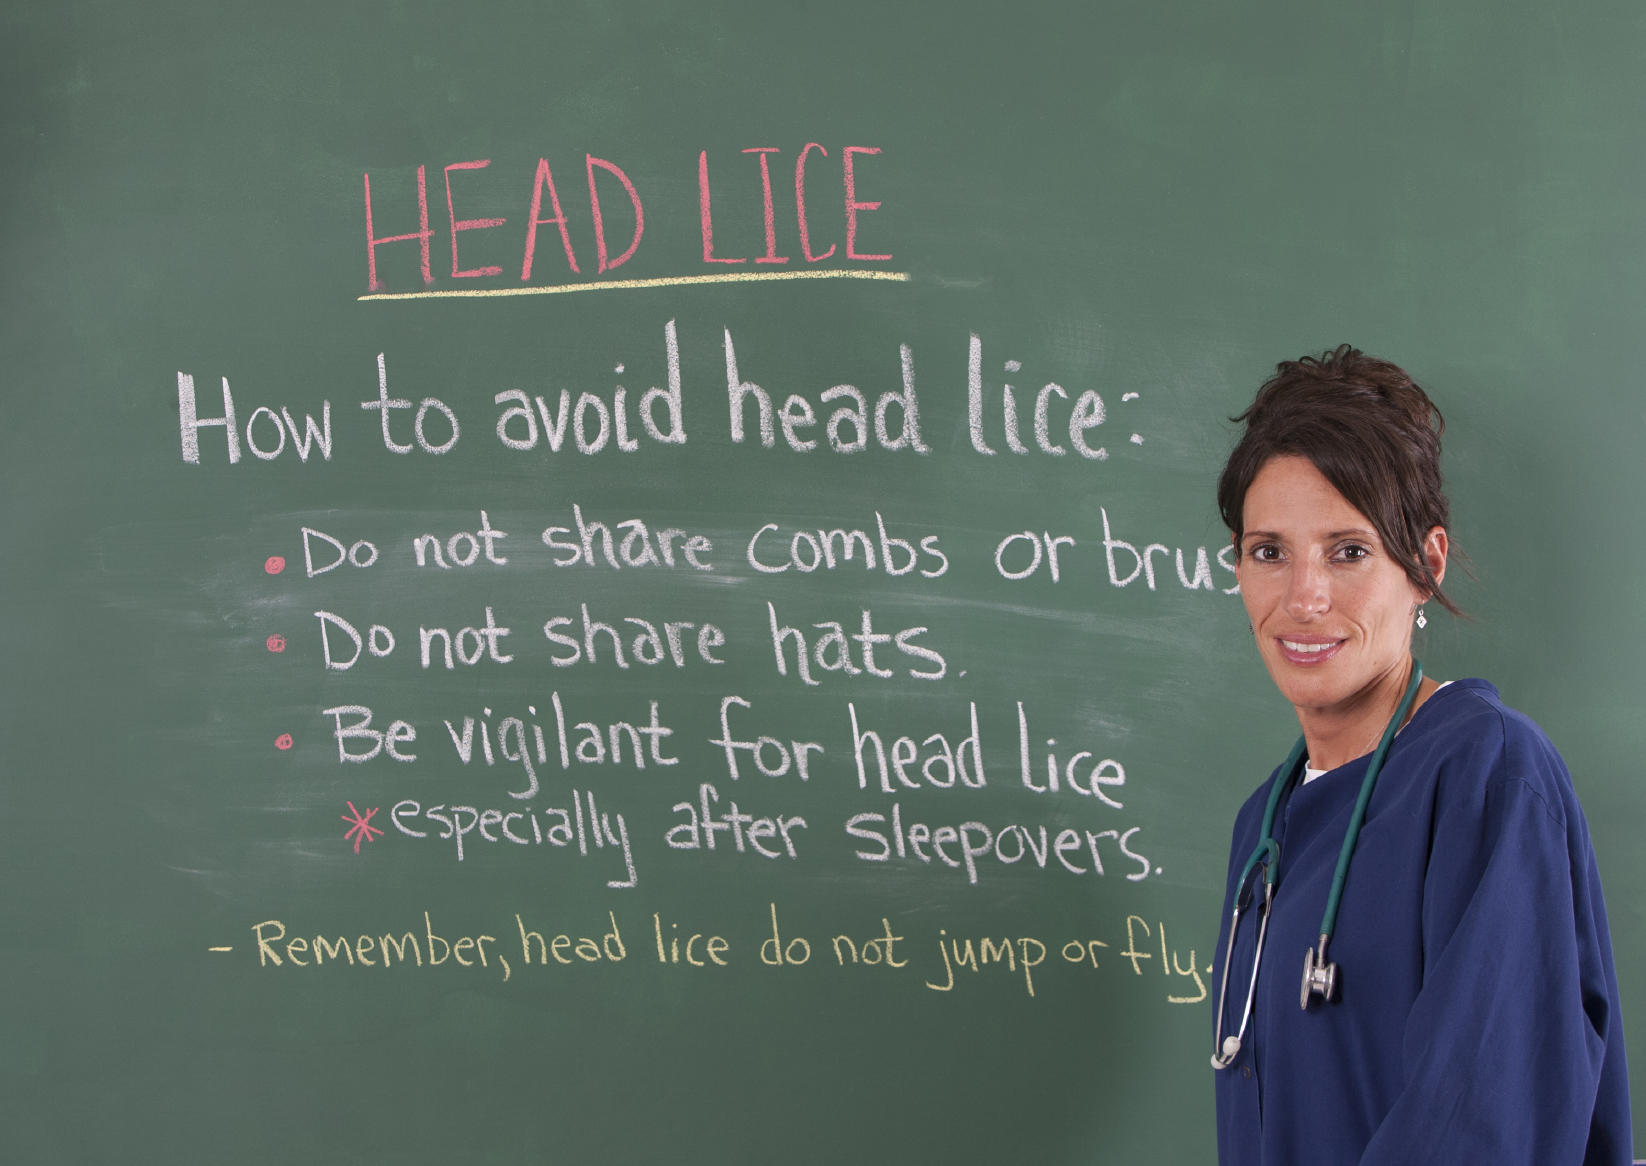 a school nurse with helpful tips about preventing the spread of lice